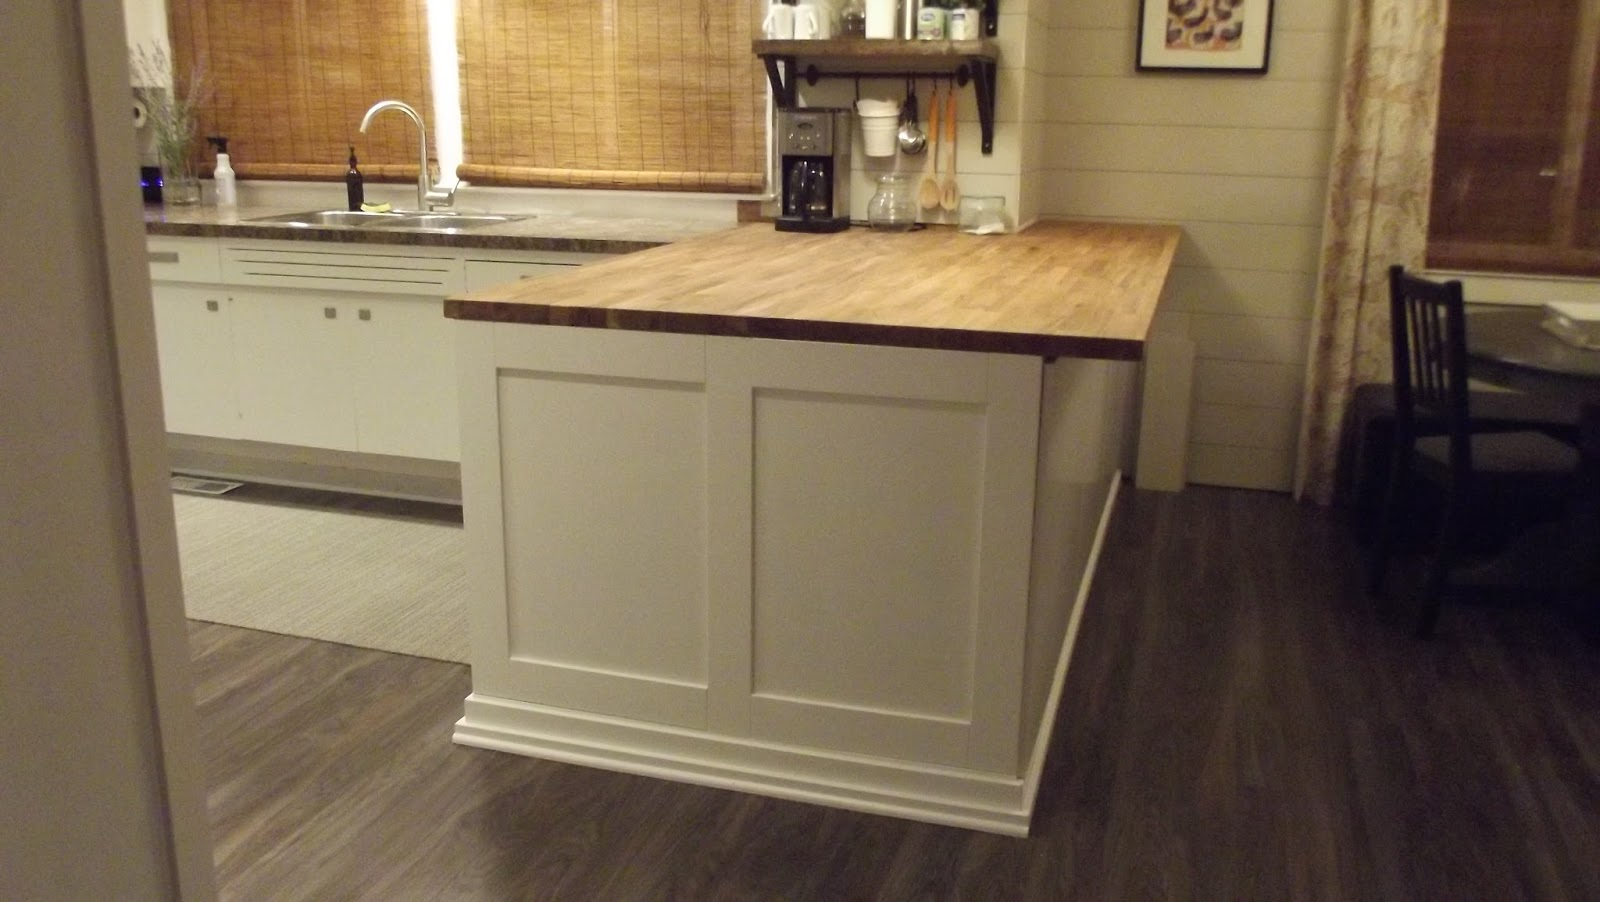 Elephant Buffet: DIY Butcher Block Kitchen Island (Before and After)